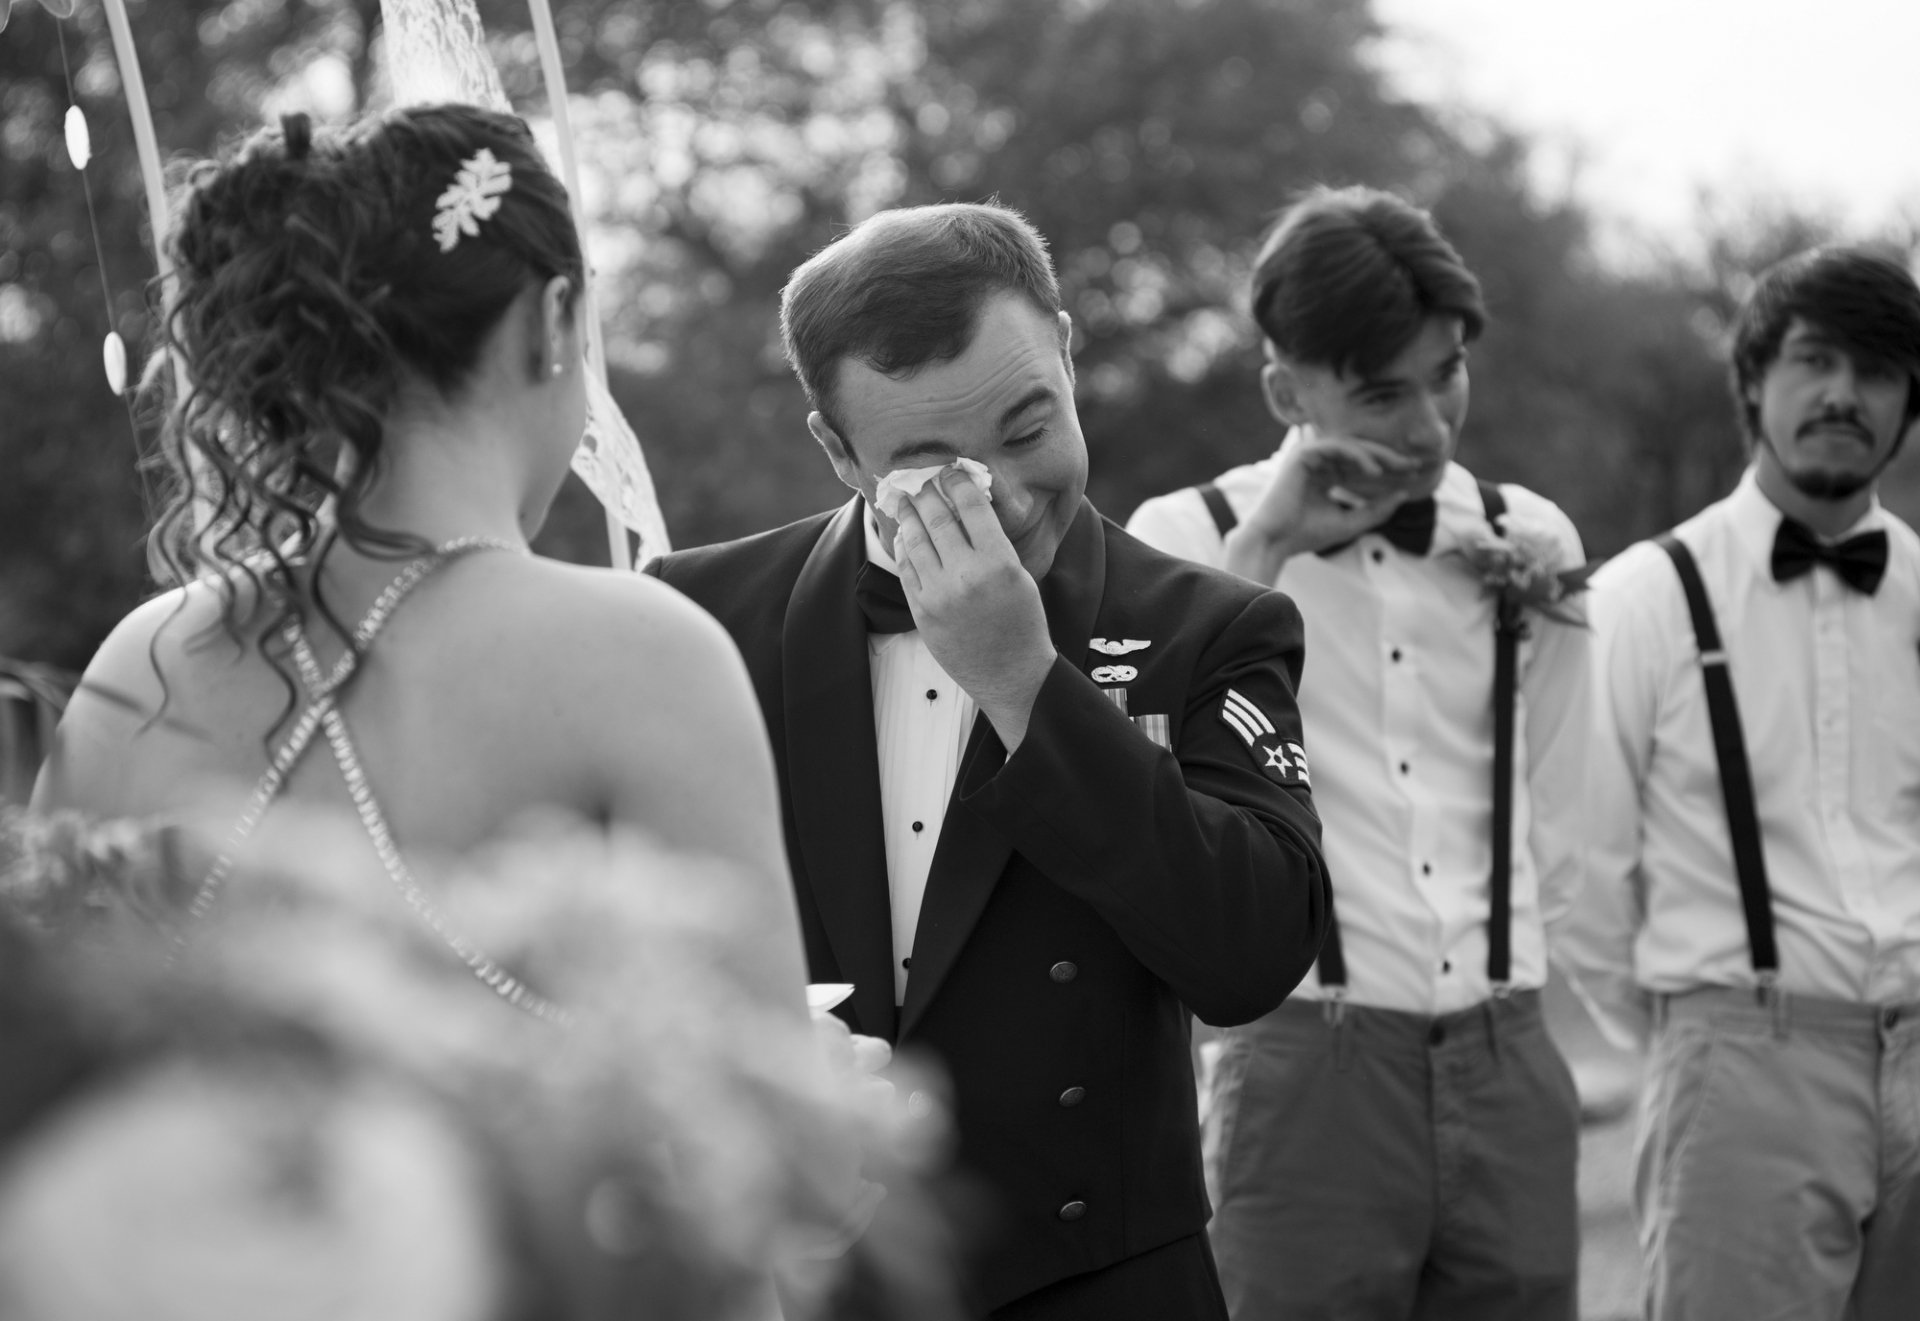 Arizona Elopement Photography | Overcome with emotions, the groom wipes away a tear